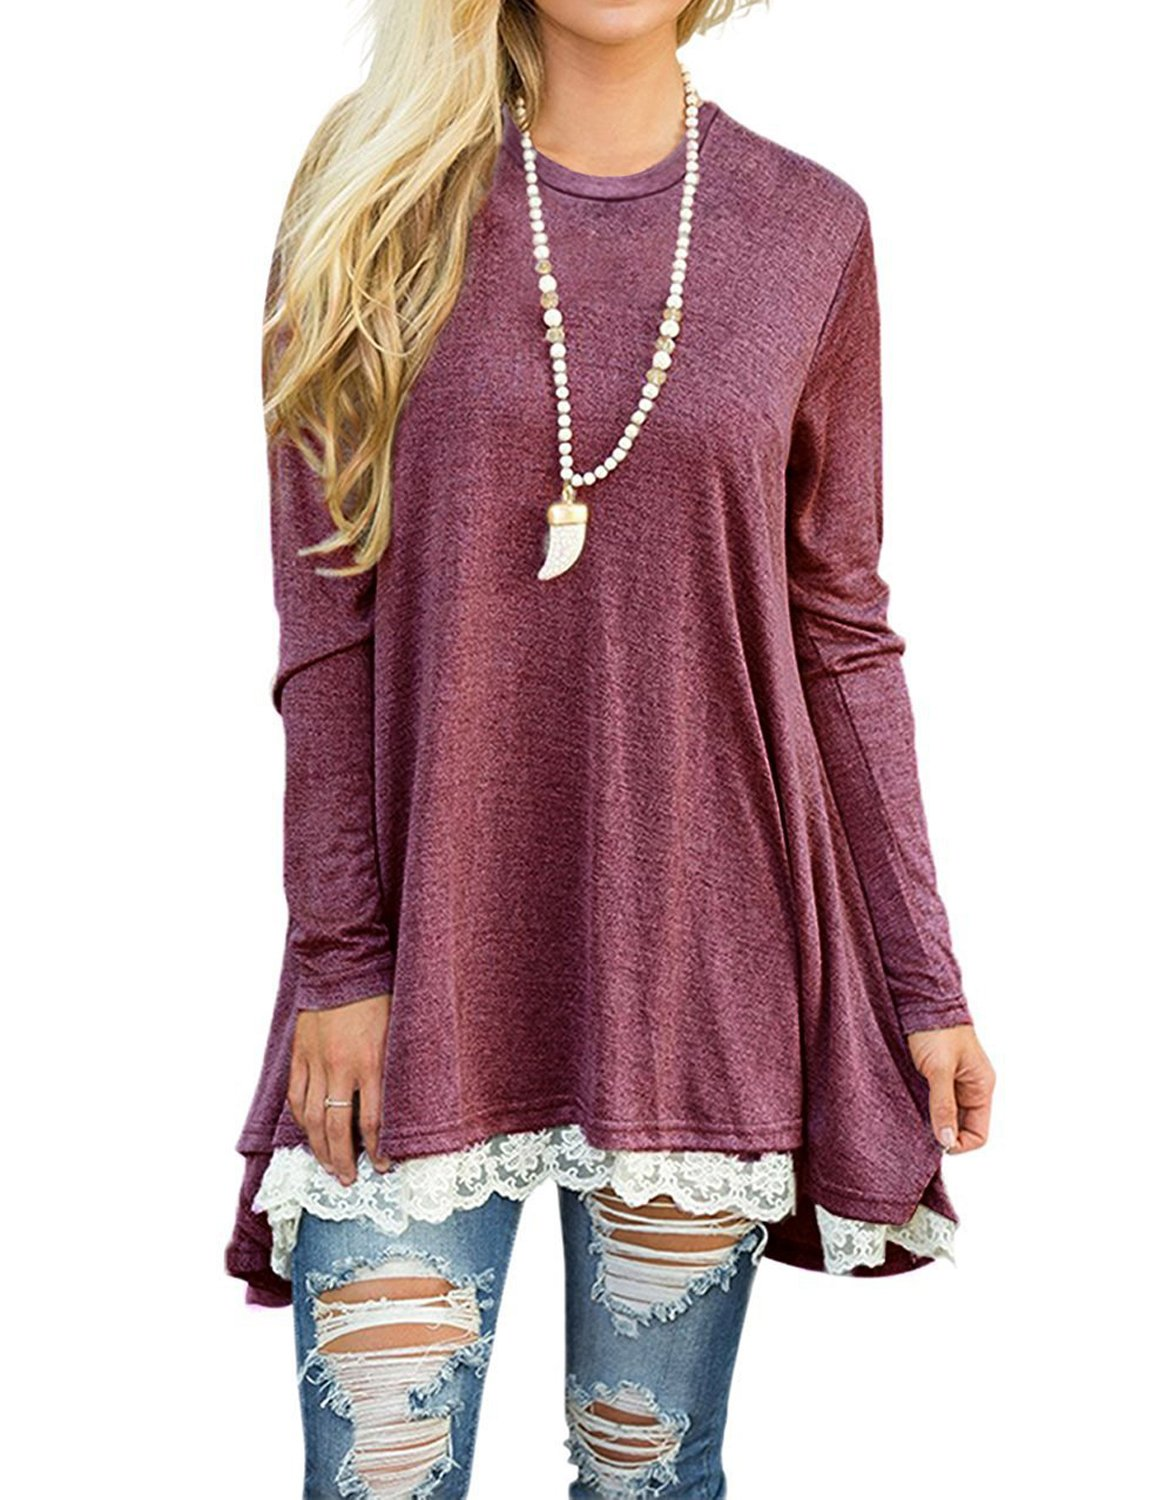 Hisweet Women's Lace T-Shirt Dress Casual Tunic Top Blouse (Long Sleeve/Short Sleeve) (Wine Red Long Sleeve, Large)